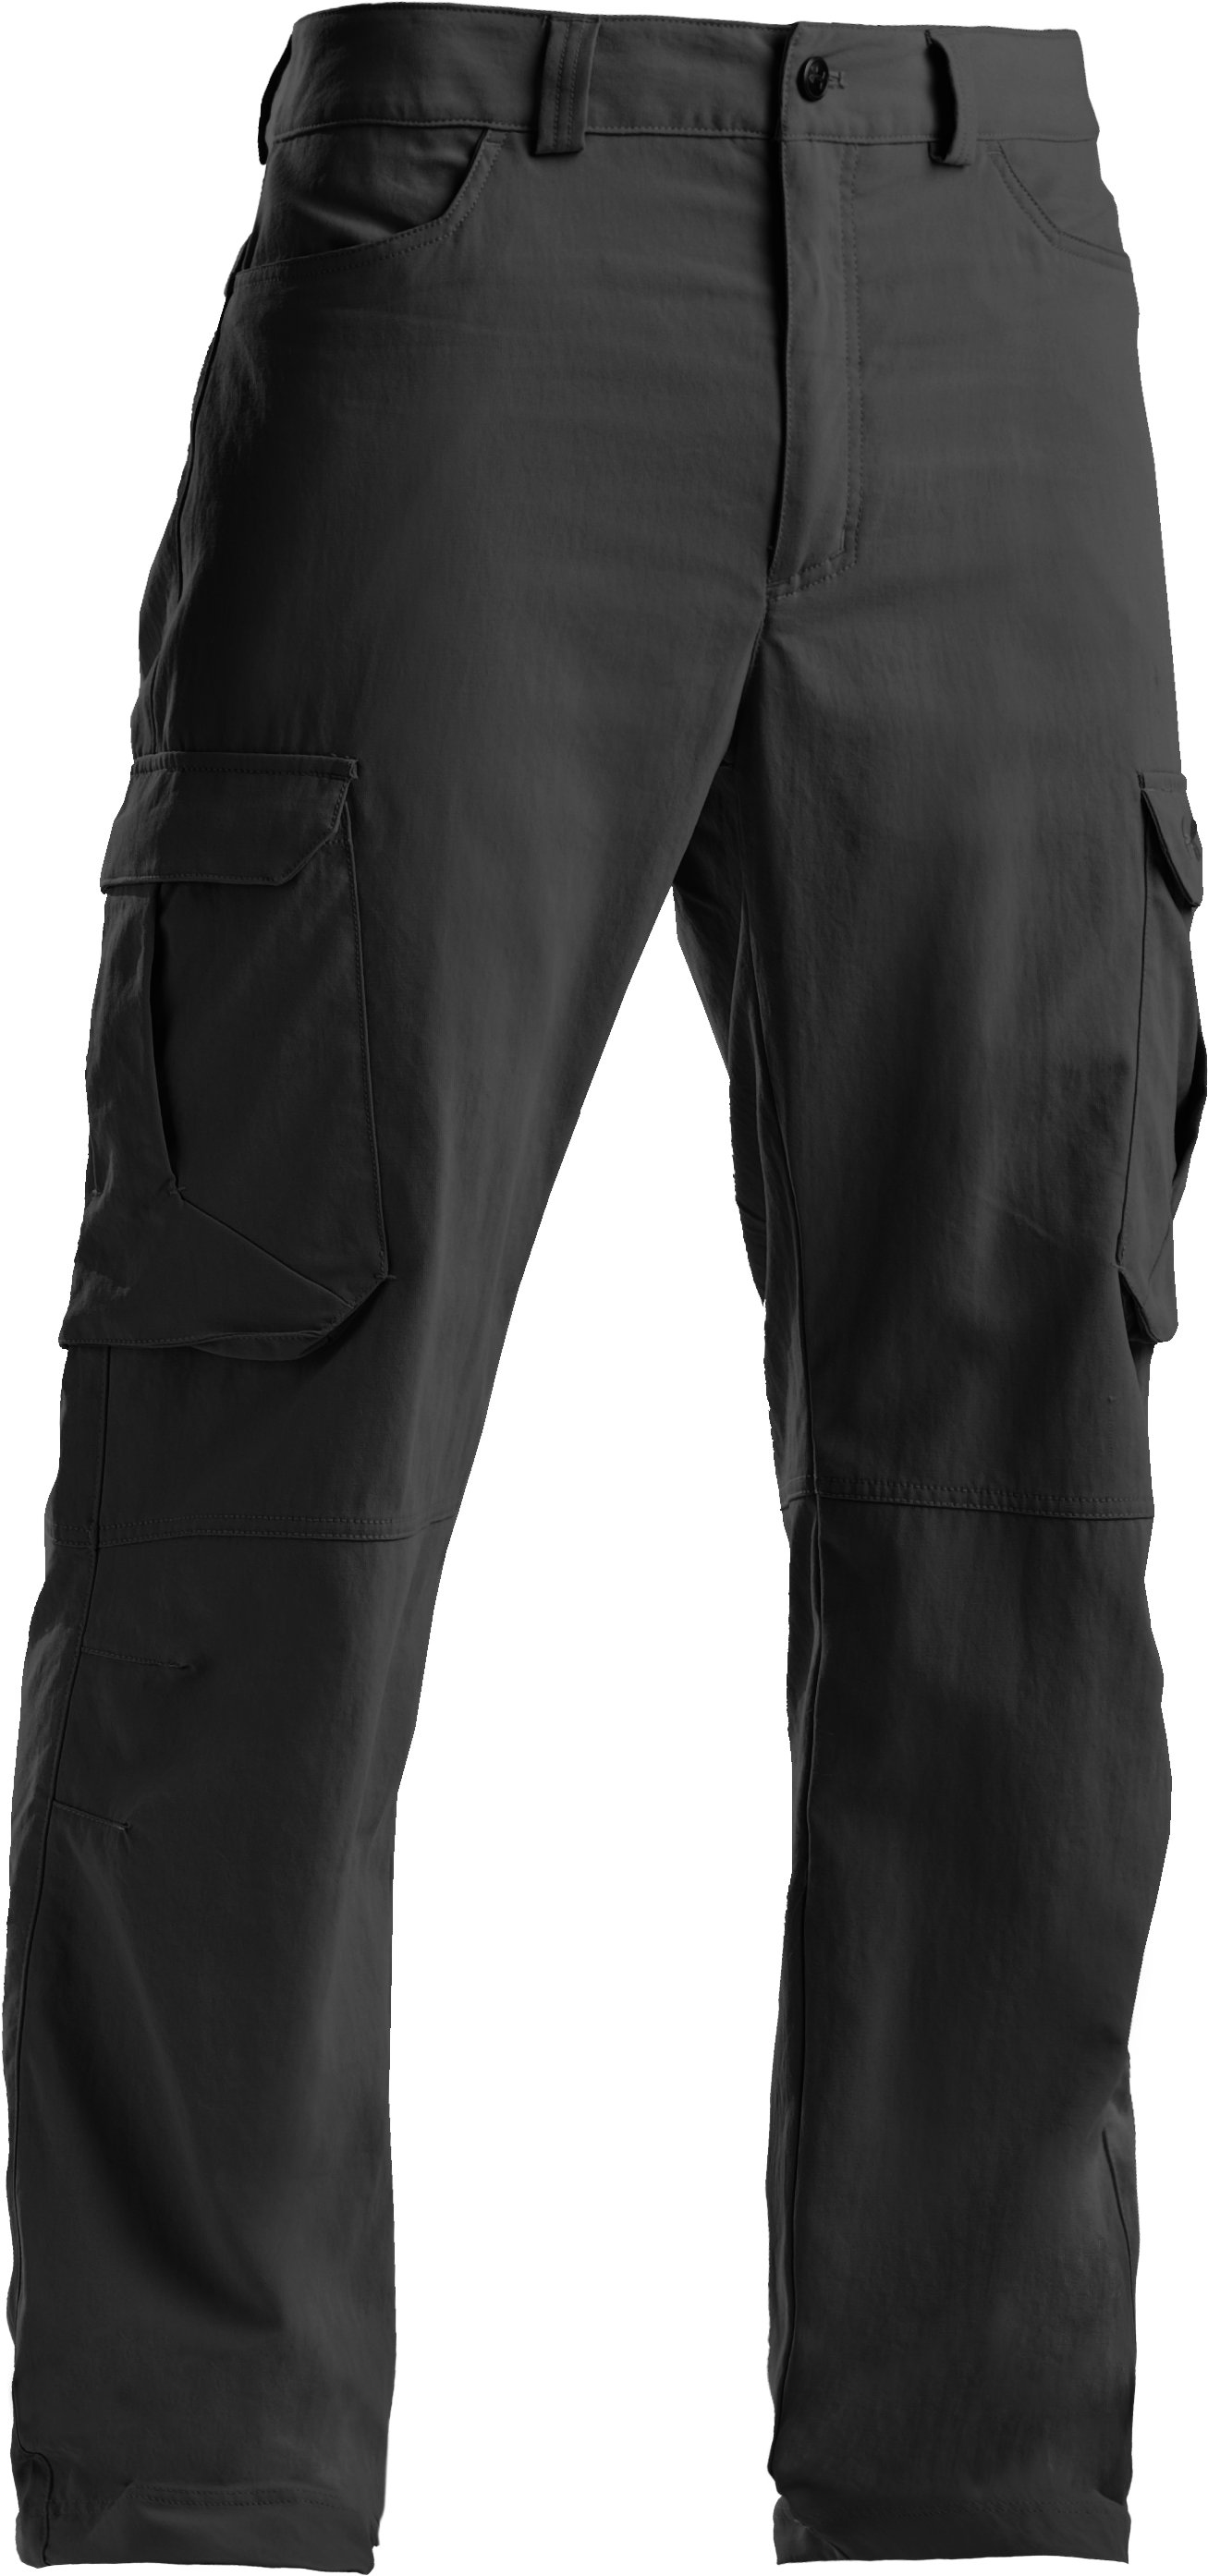 Men's Tactical Performance Field Pants, Black , undefined